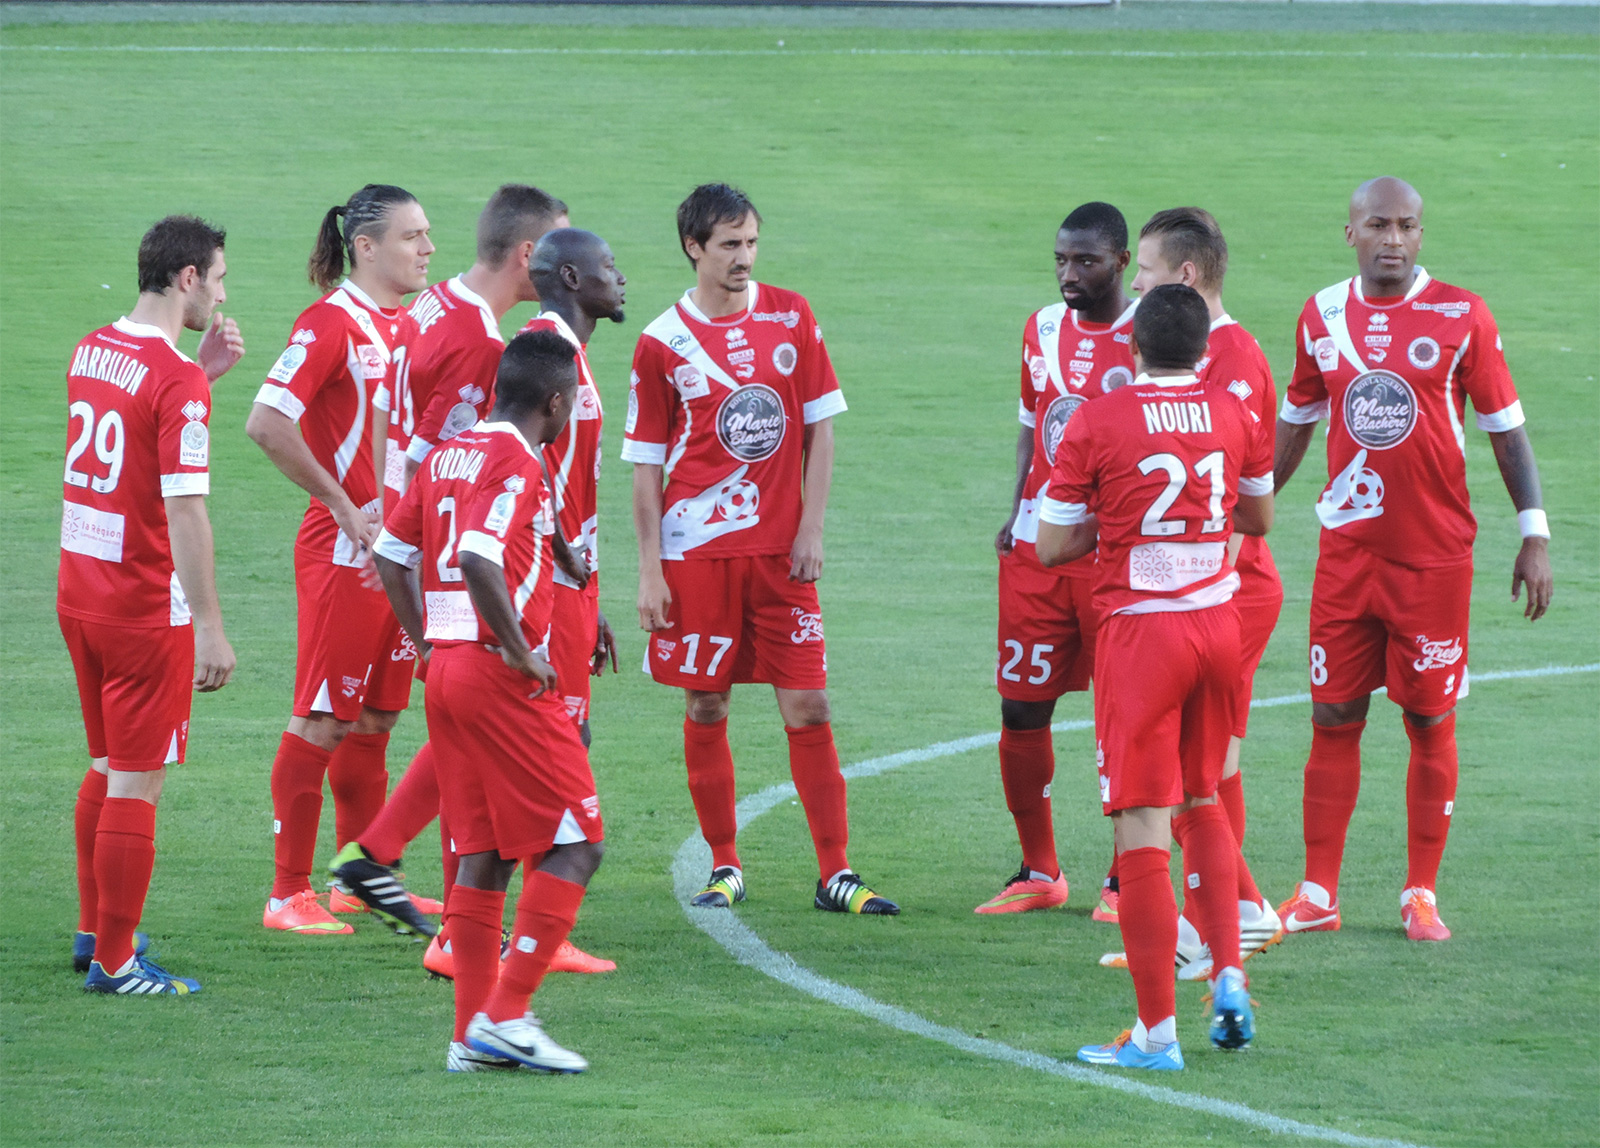 Match Stade Brestois 29 vs Nîmes Olympique en direct live streaming